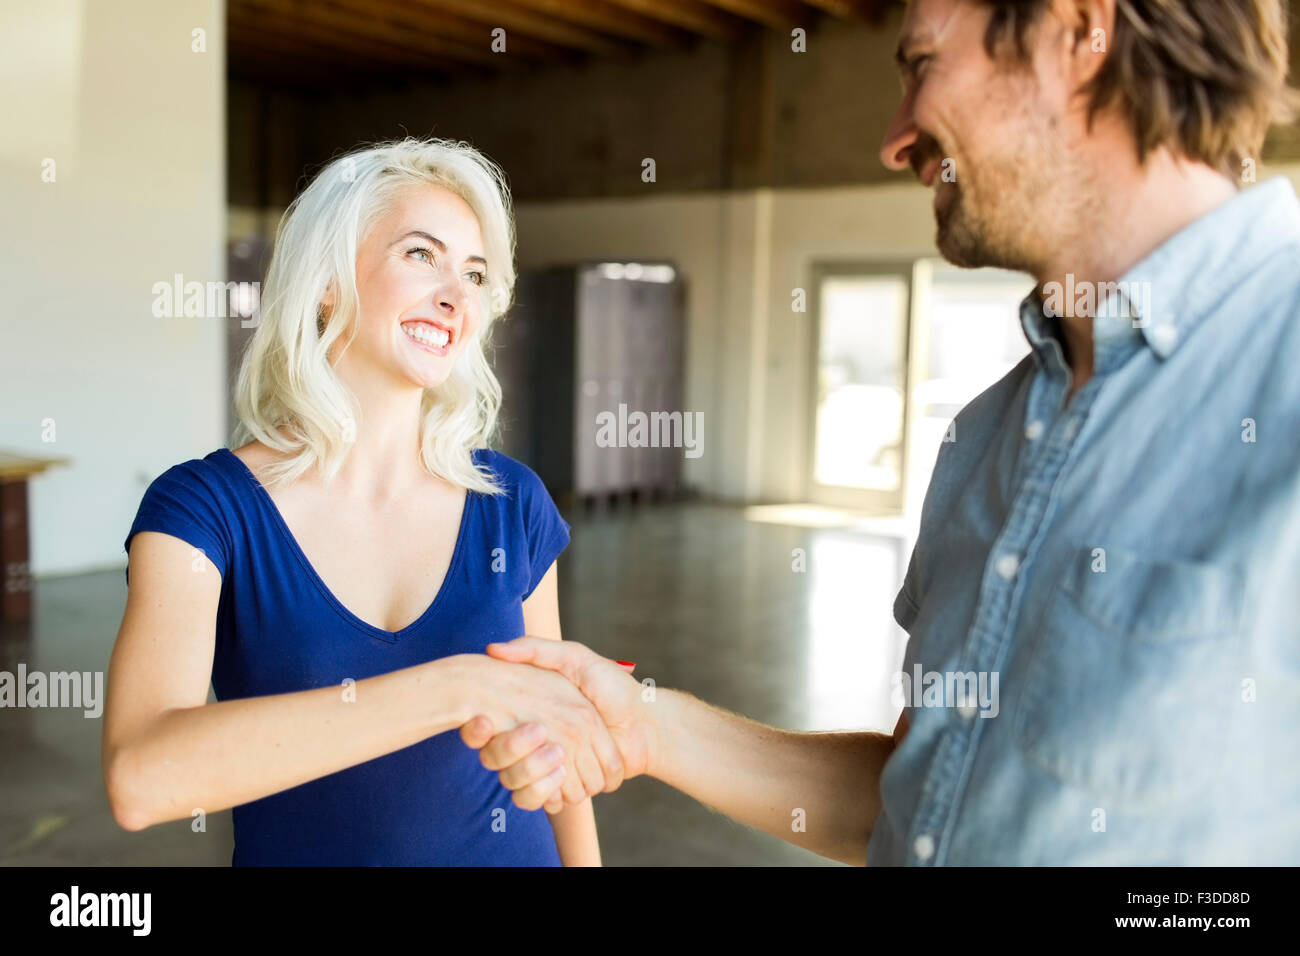 Man greeting with woman - Stock Image